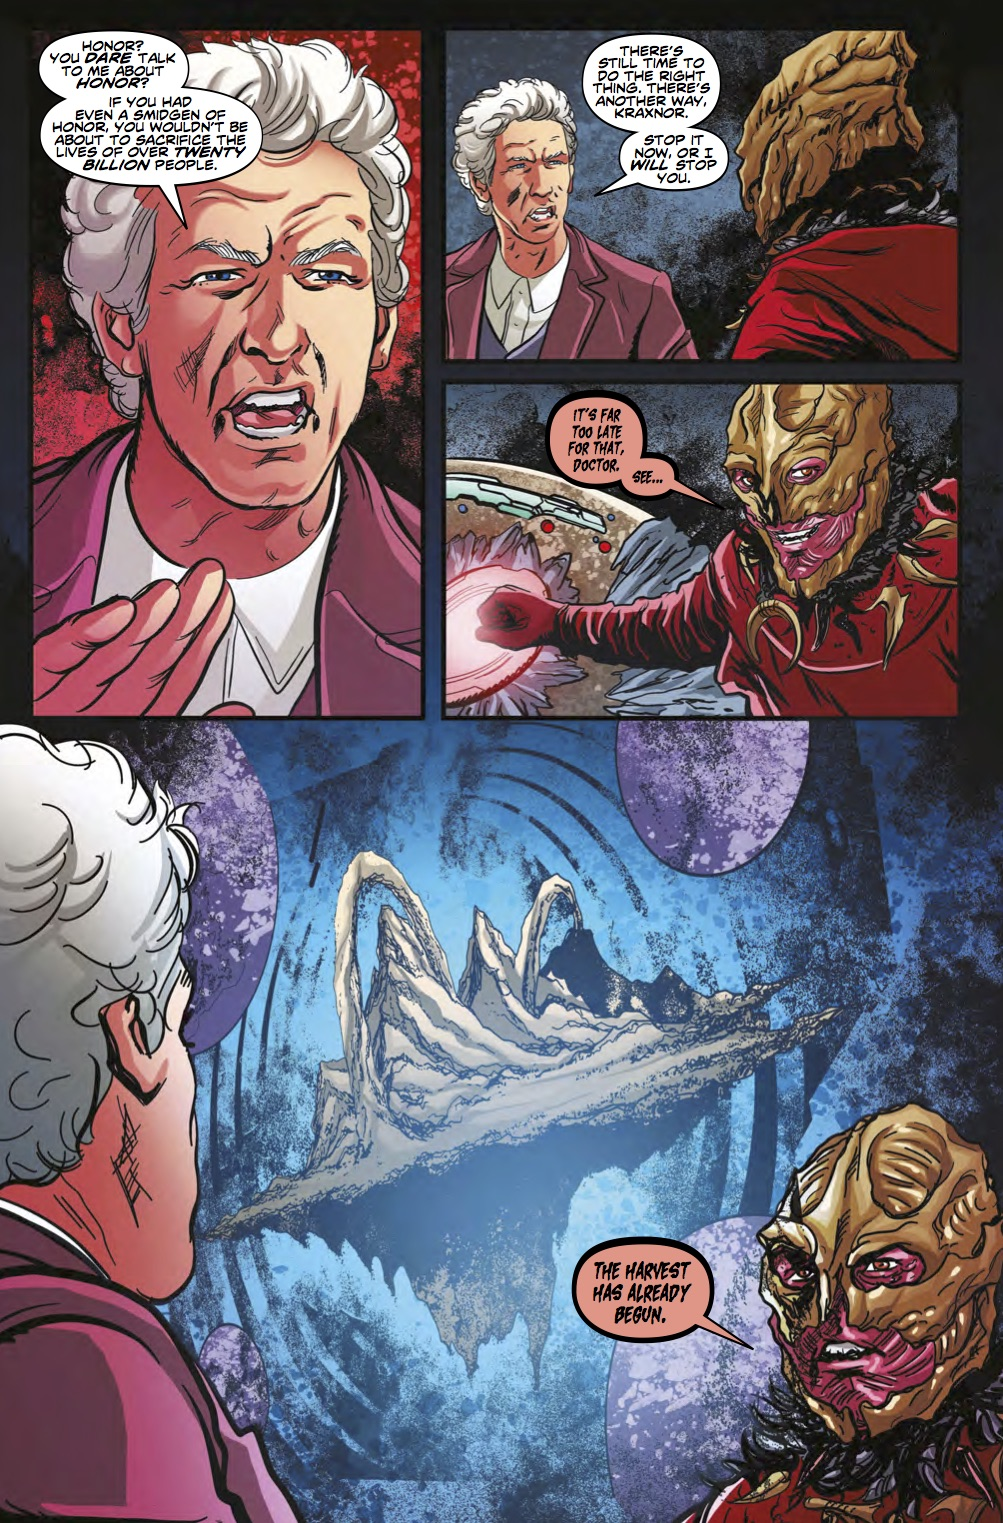 Doctor Who Ghost Stories #4 Page 3 (Credit: Titan)